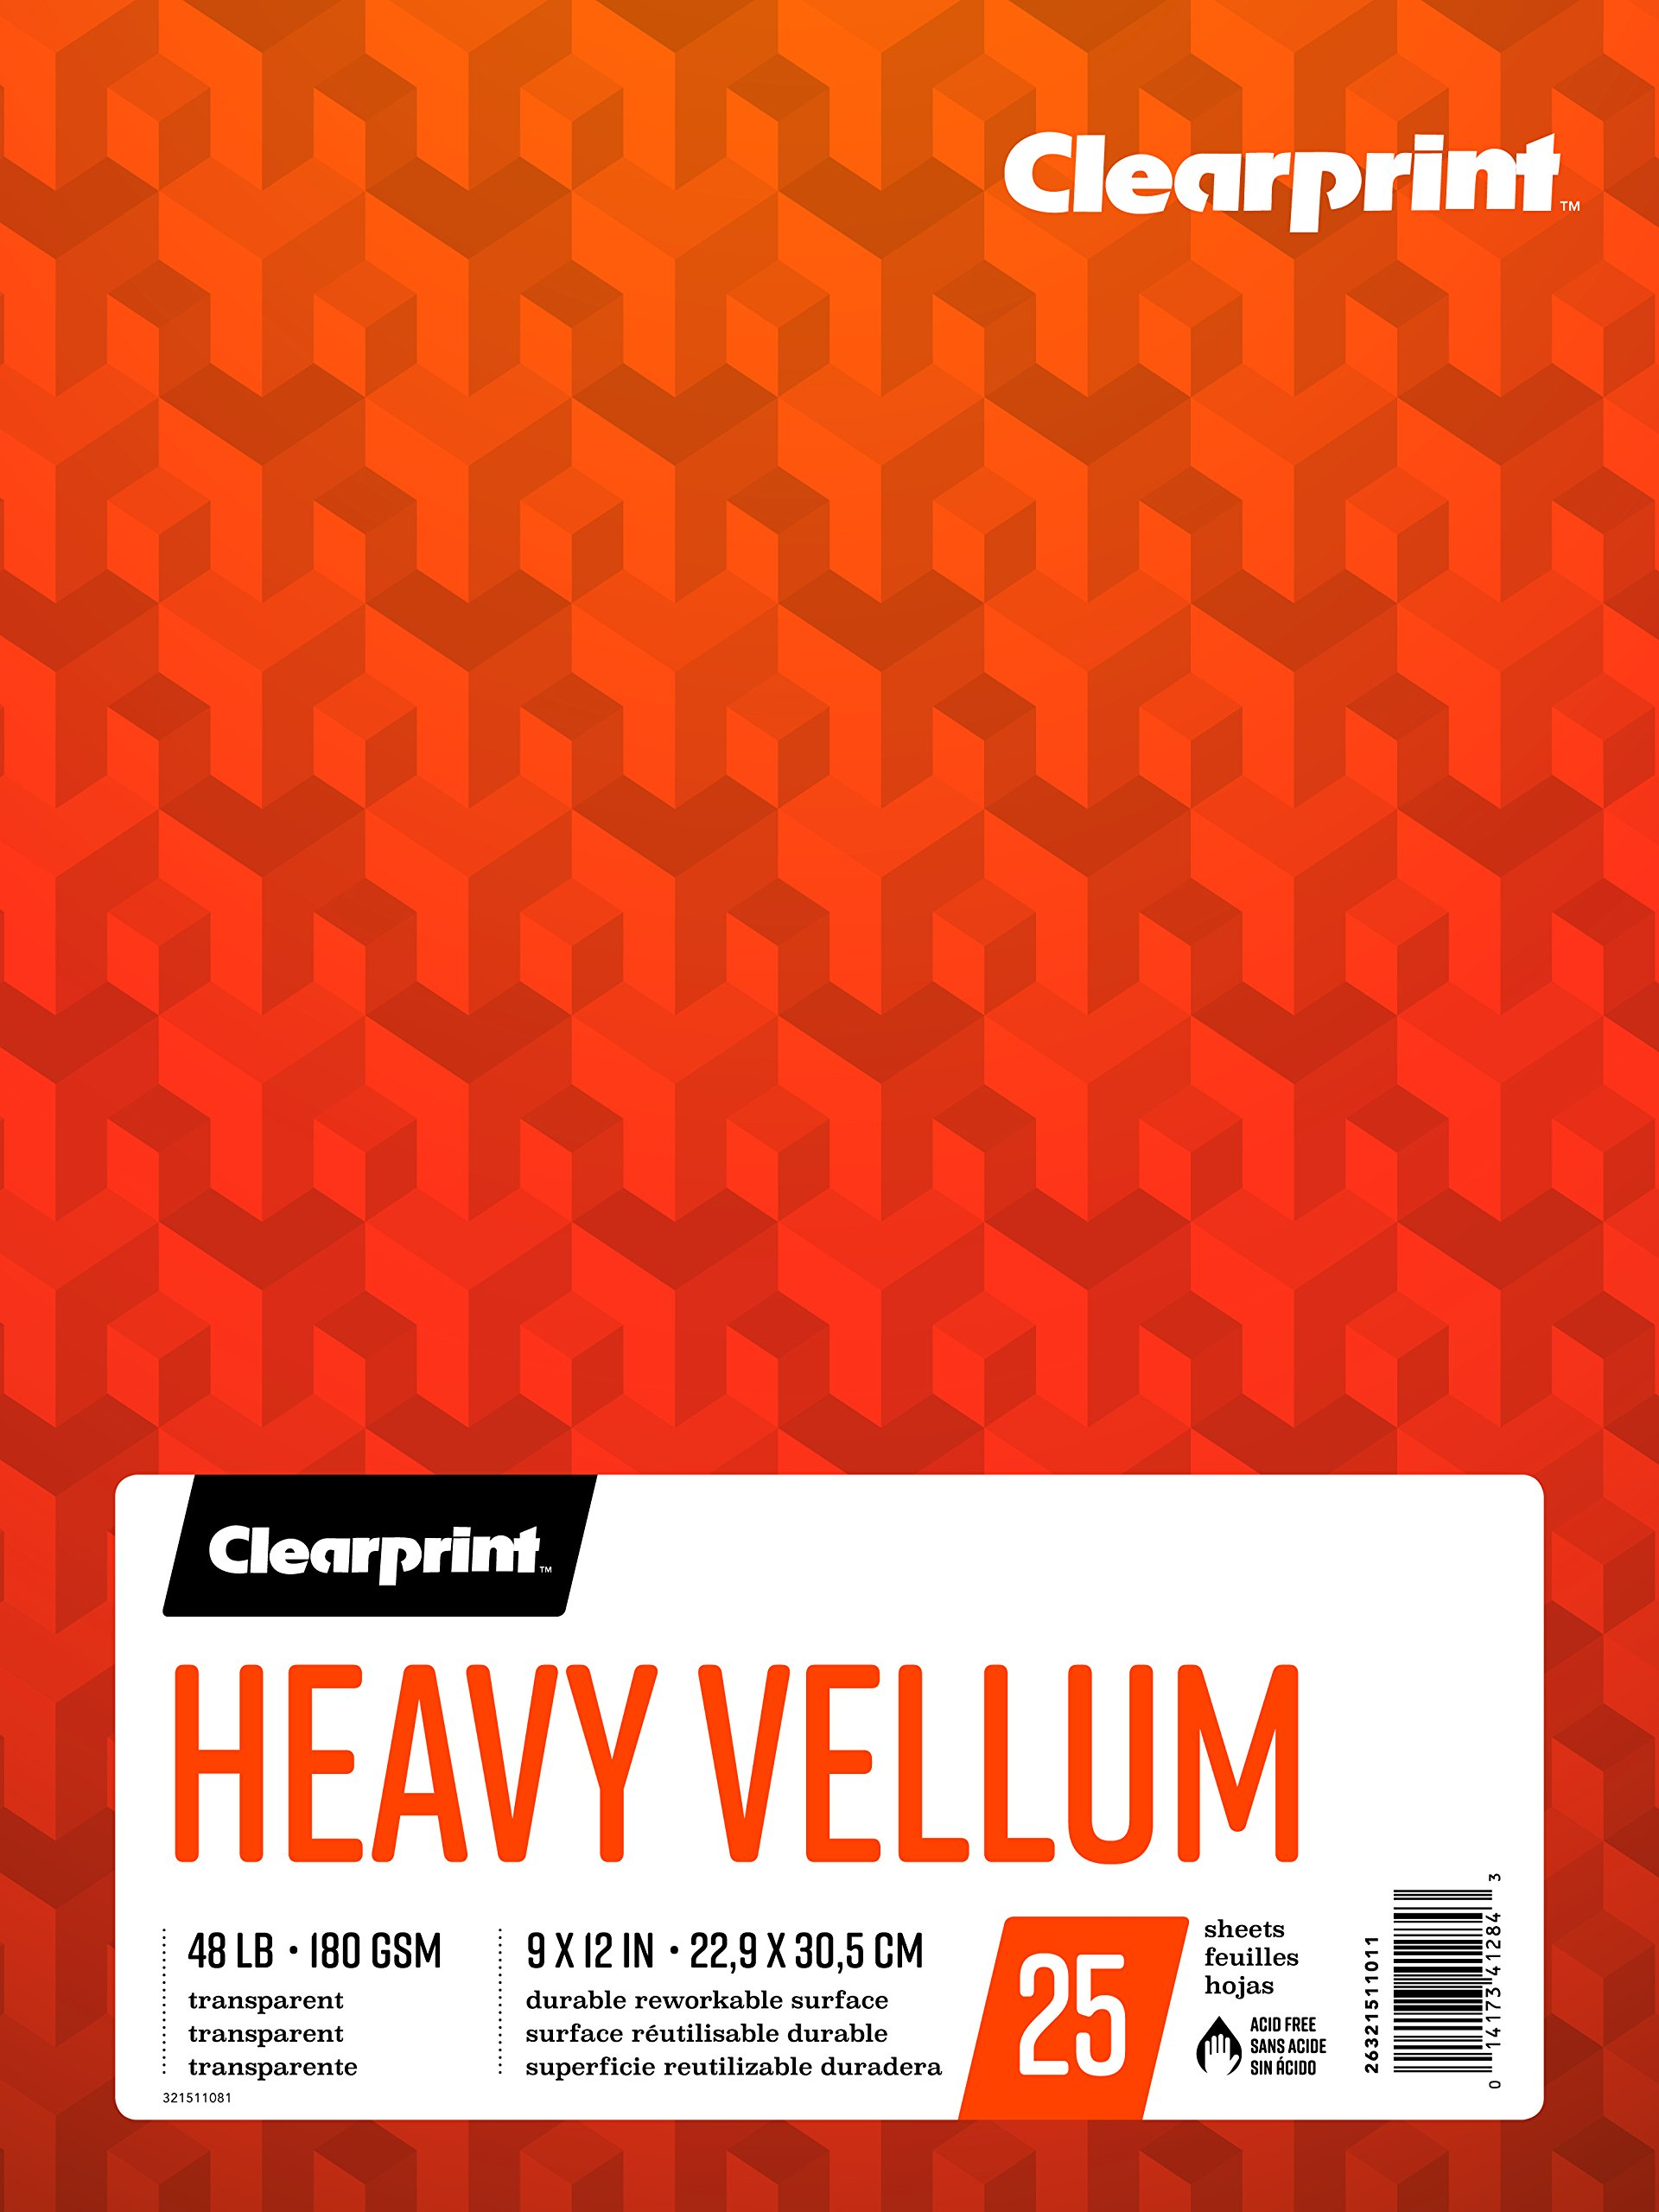 Clearprint Heavy Vellum Pad, 48 LB, 180 GSM, 9 x 12 Inches, 25 Sheets Per Pad, 1 Each (26321511011) by Clearprint